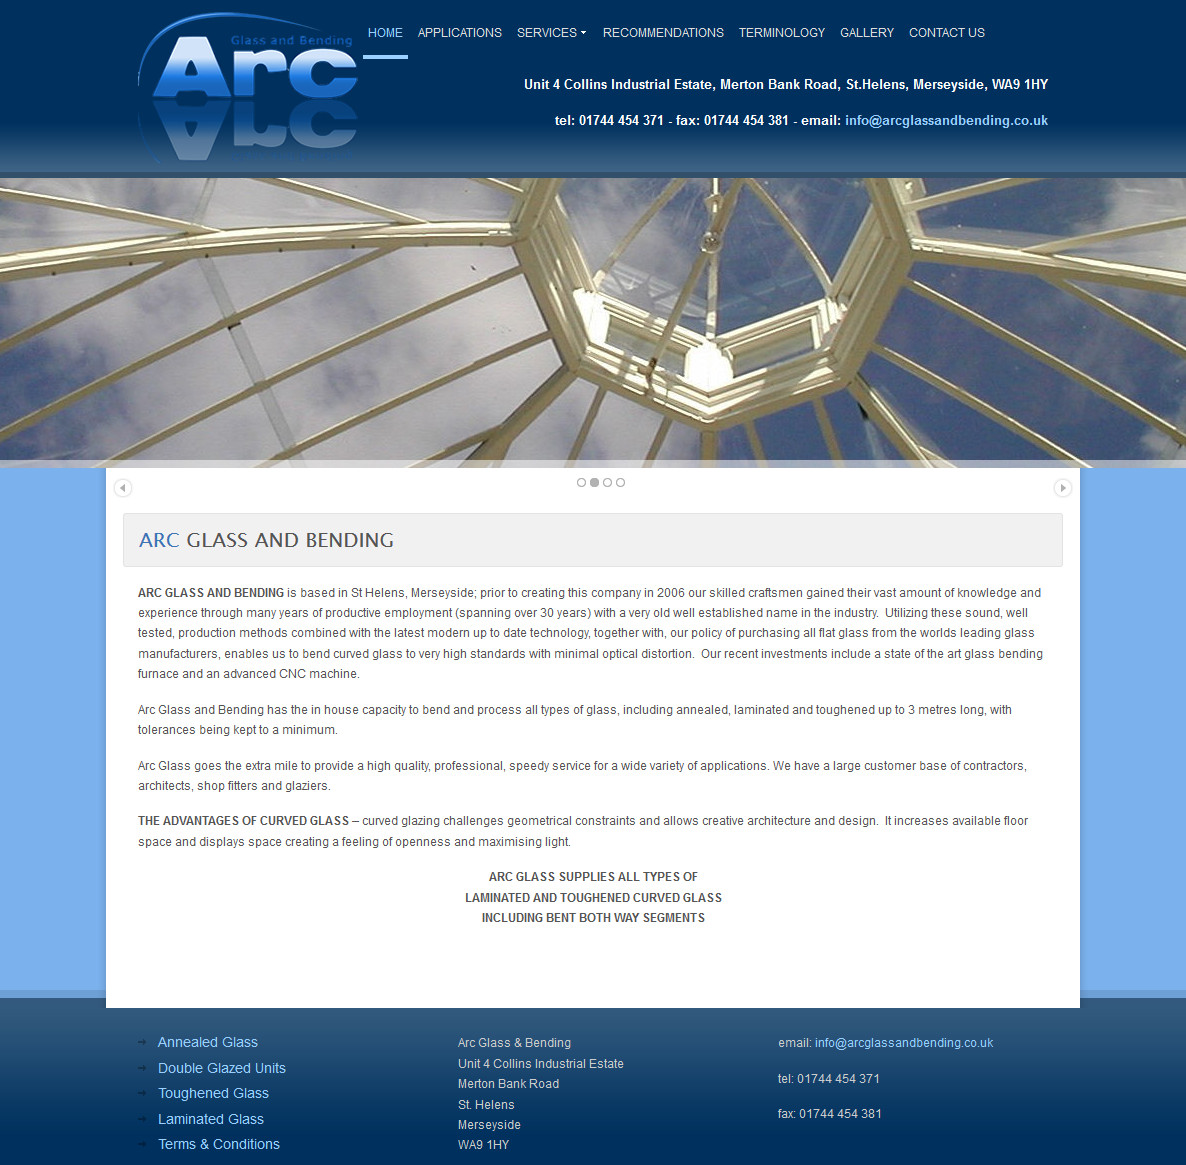 Arc Glass and Bending Design